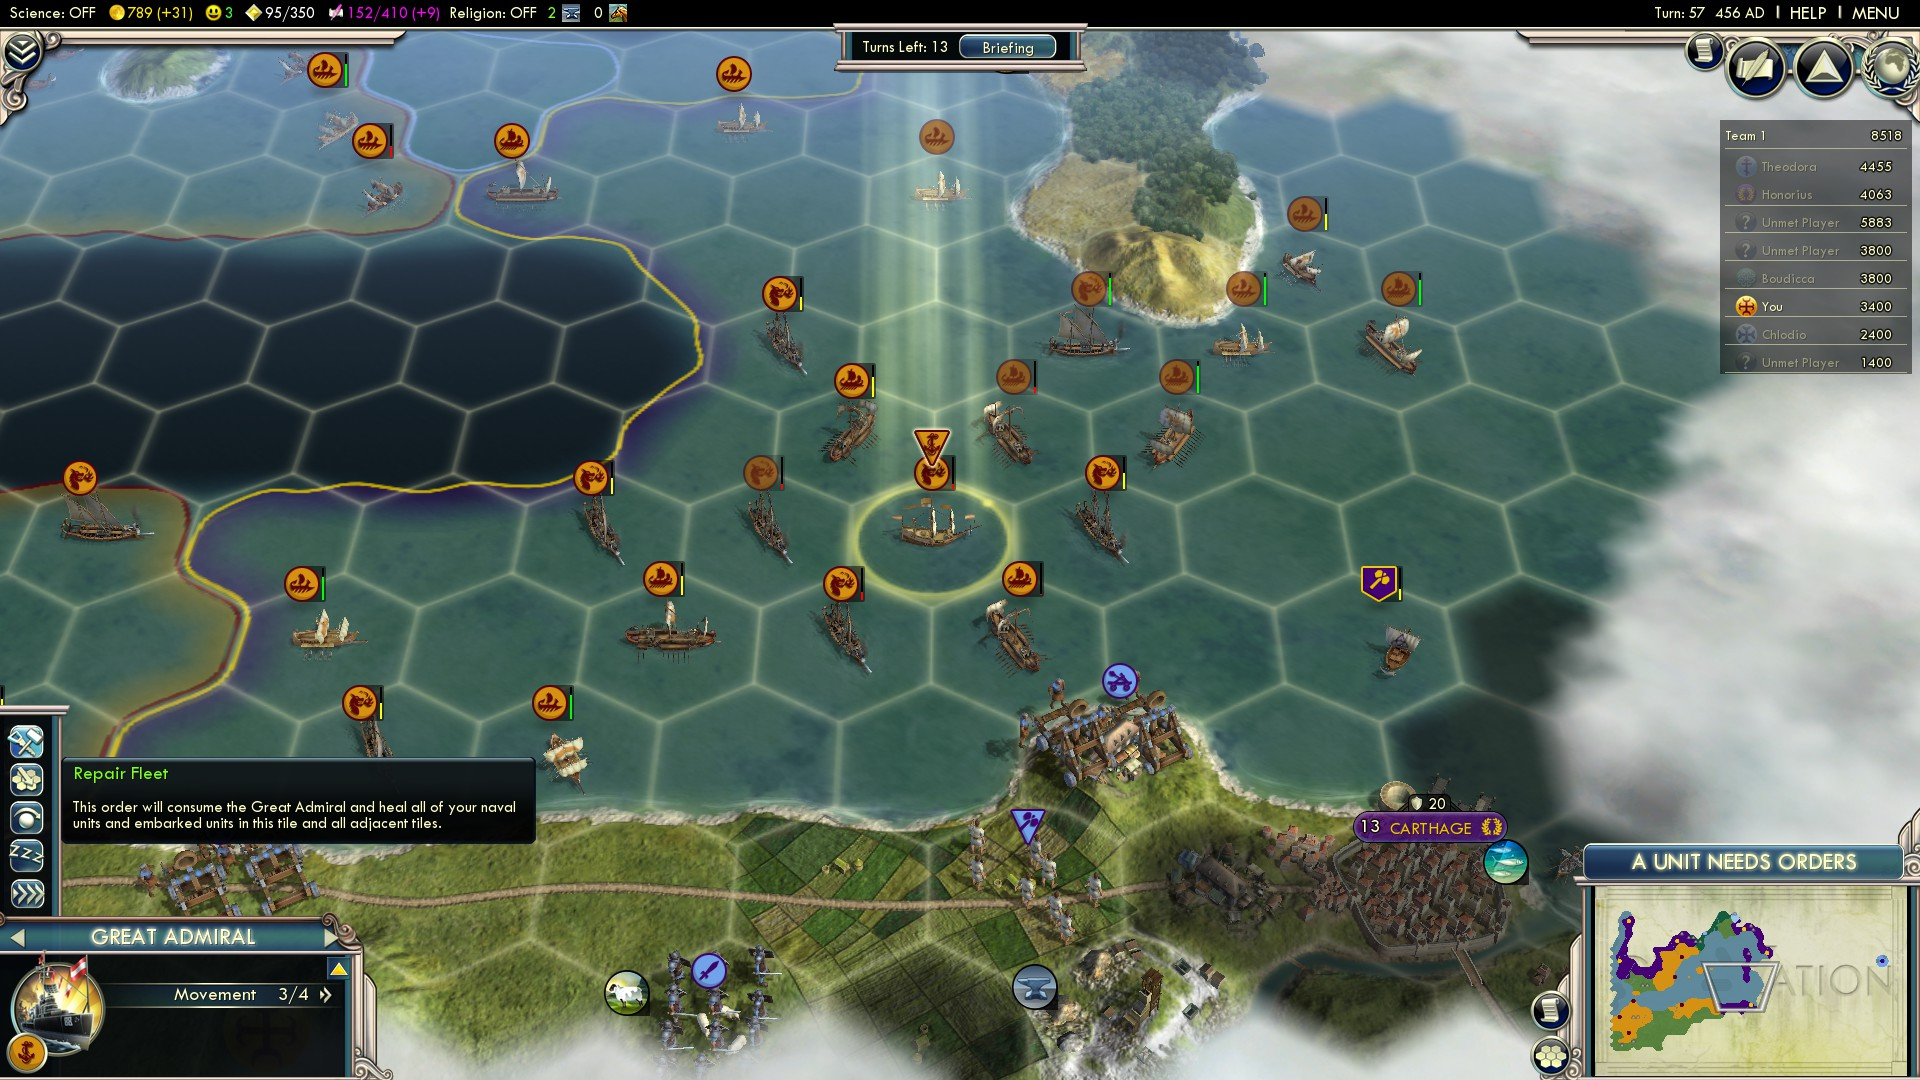 Civilization 5 Fall of Rome Vandals Deity - Use one of the Great Admirals